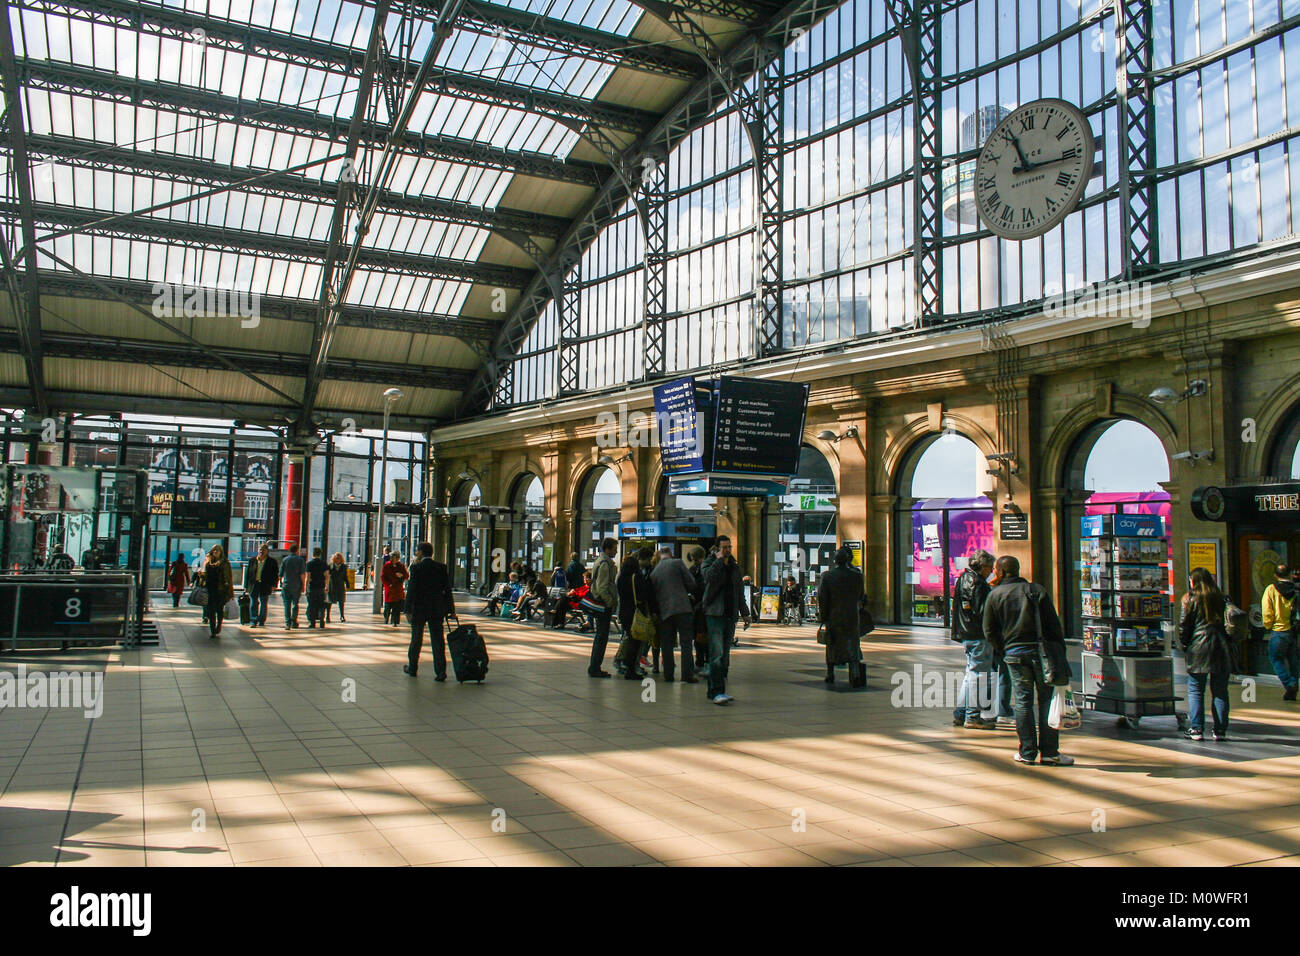 LIVERPOOL, ENGLAND - APRIL 20, 2012 : crowd people at Liverpool Lime Street train station - Stock Image